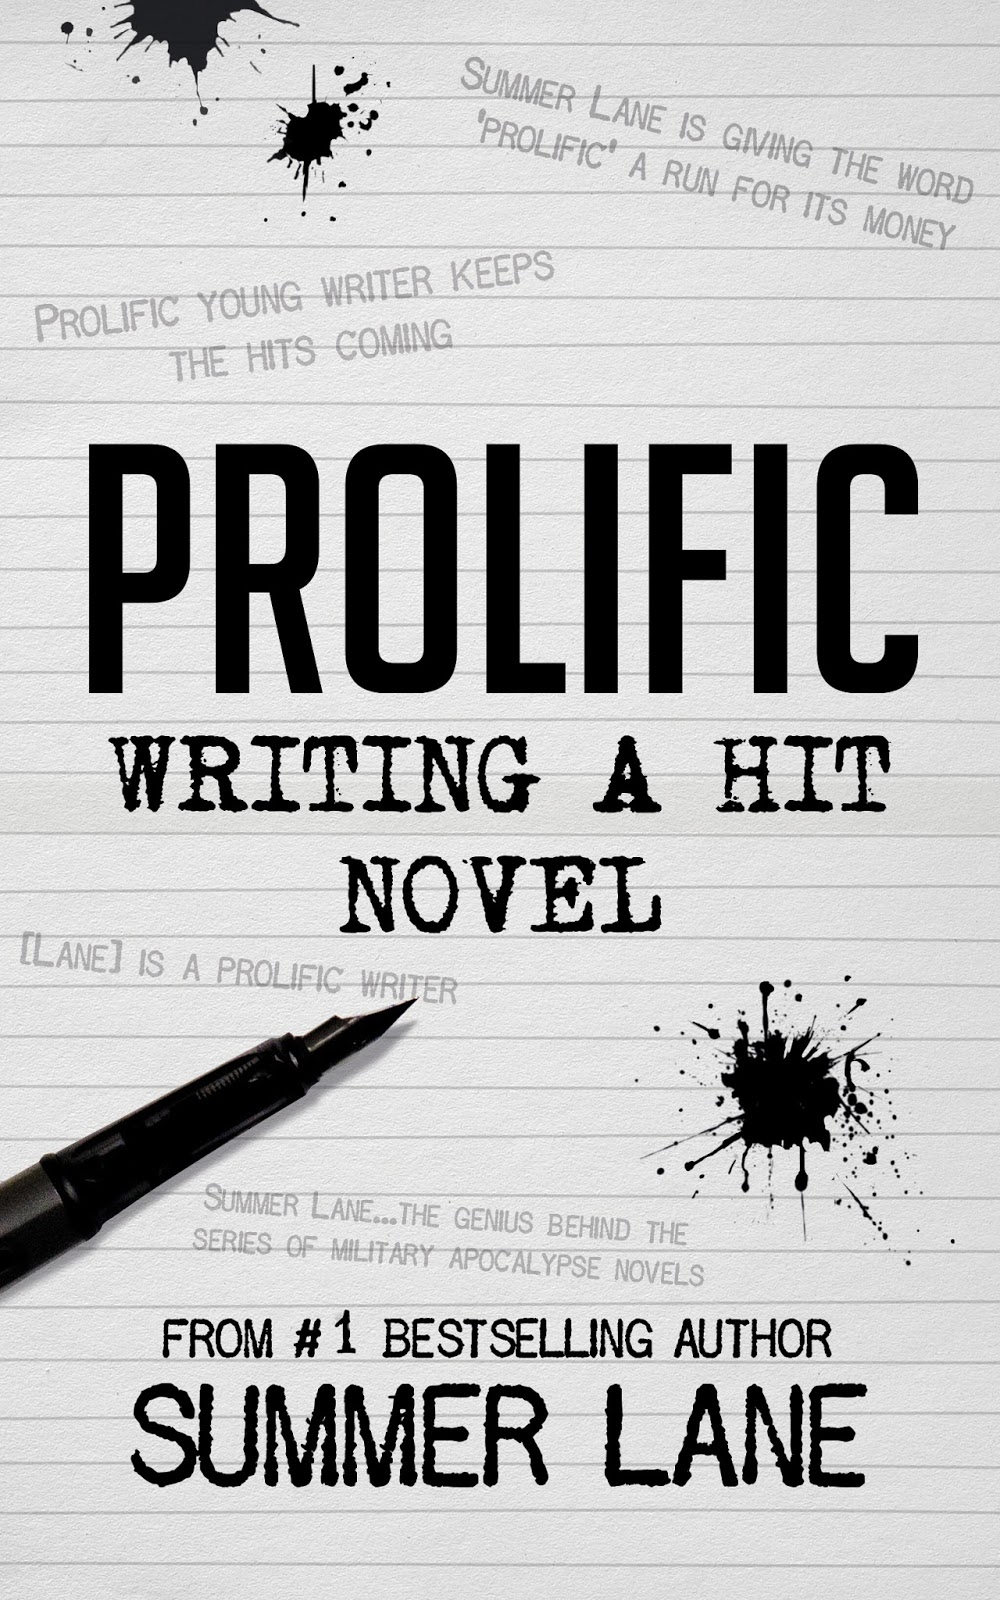 Writing belle september 2017 prolific writing a hit novel will be a compilation and guidebook that covers everything i have learned about establishing yourself in a modern publishing solutioingenieria Images